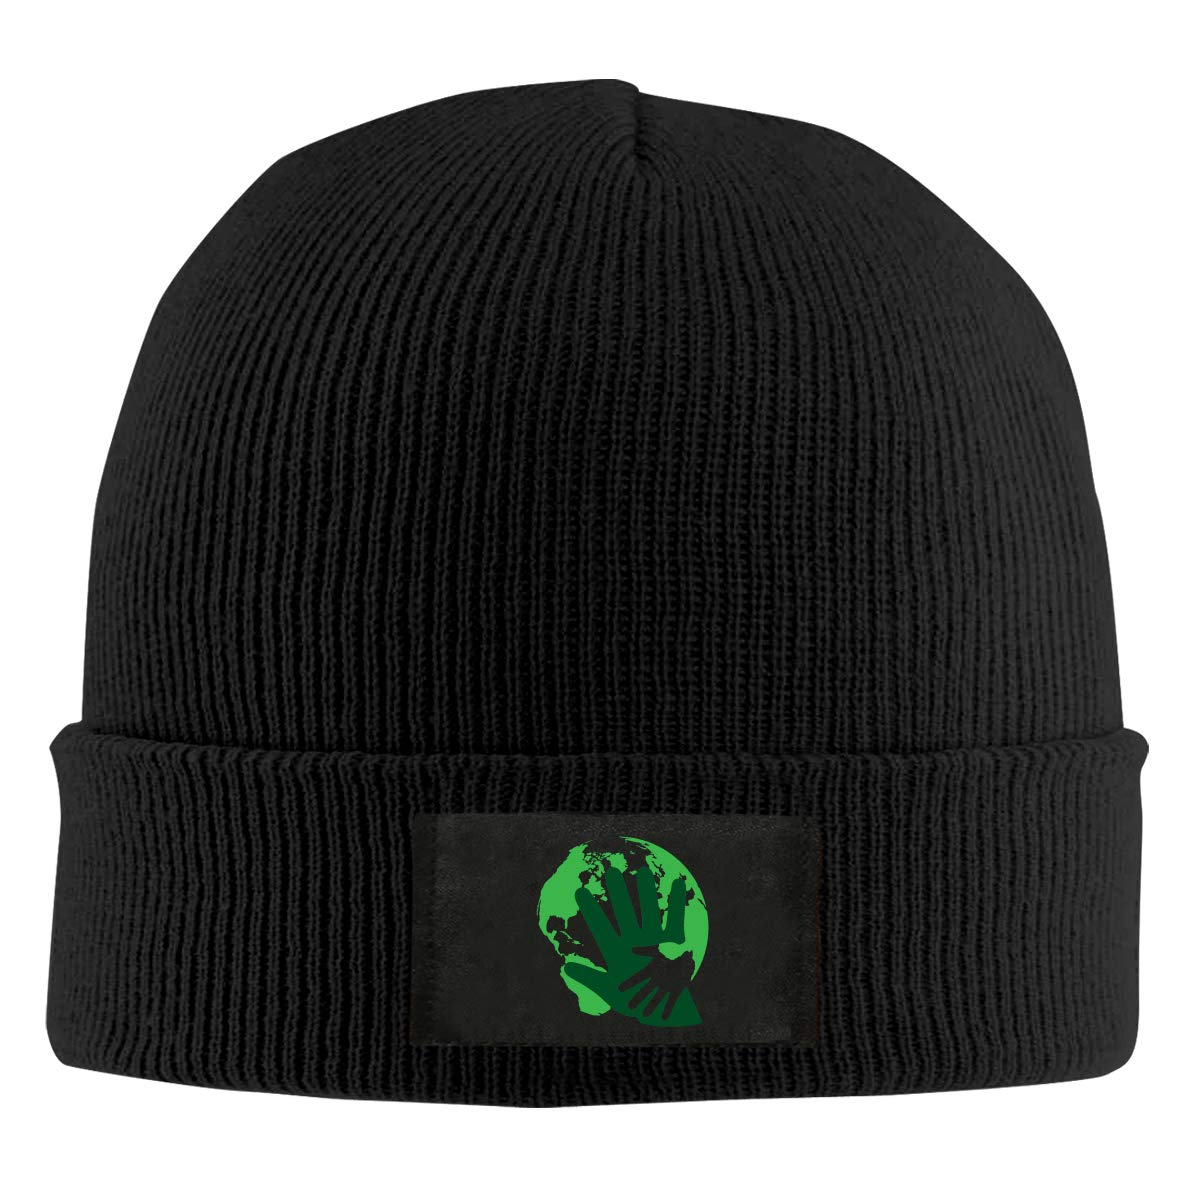 Embrace The Earth in Earth Day Unisex Winter Printed Warm Knitting Hats Skull Cap